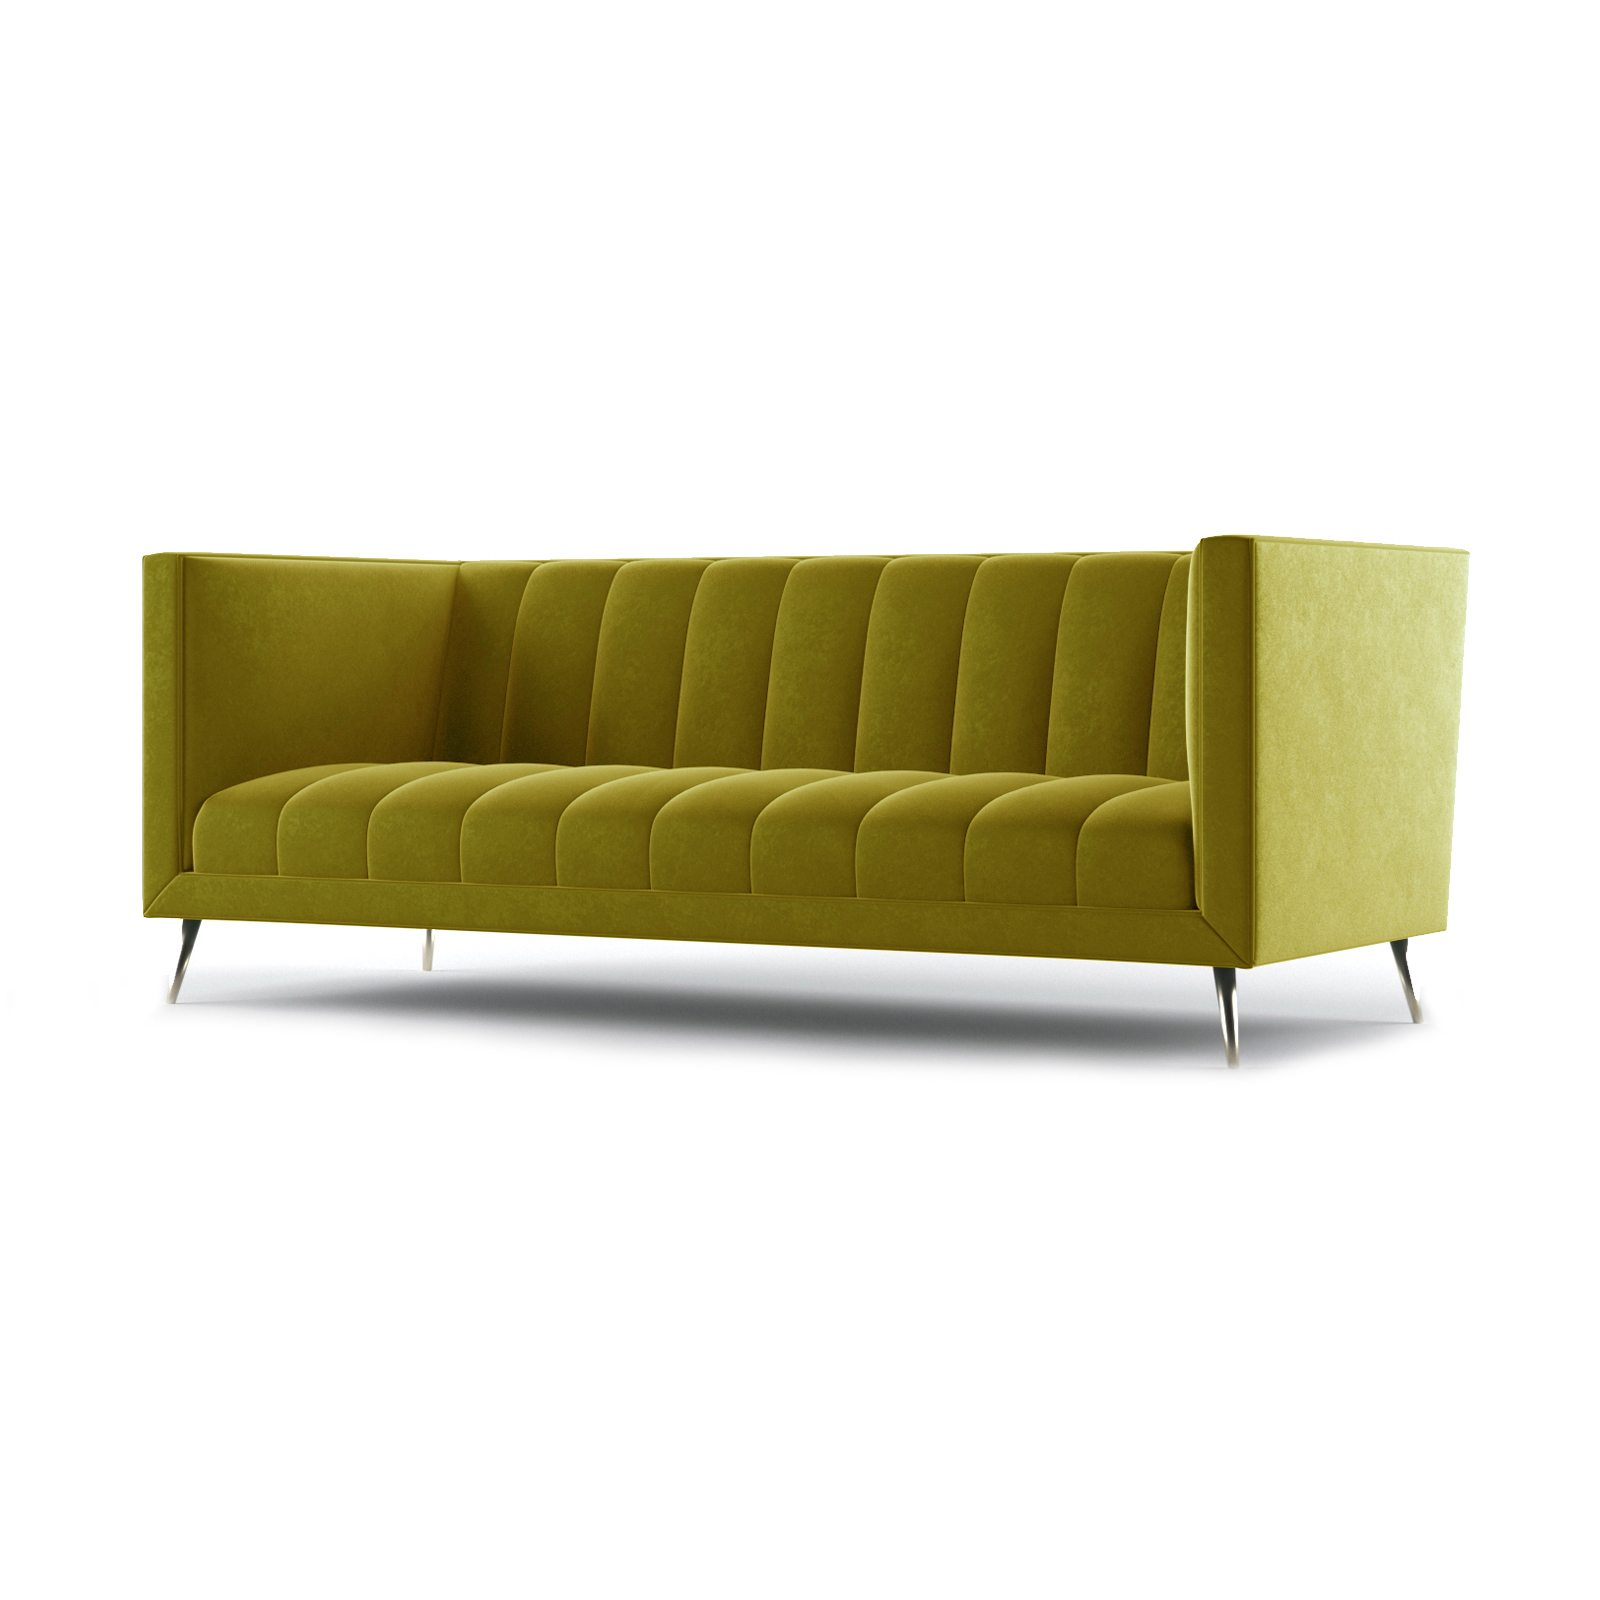 Connick Three and a Half Seater Sofa by Bonham & Bonham Gold 02